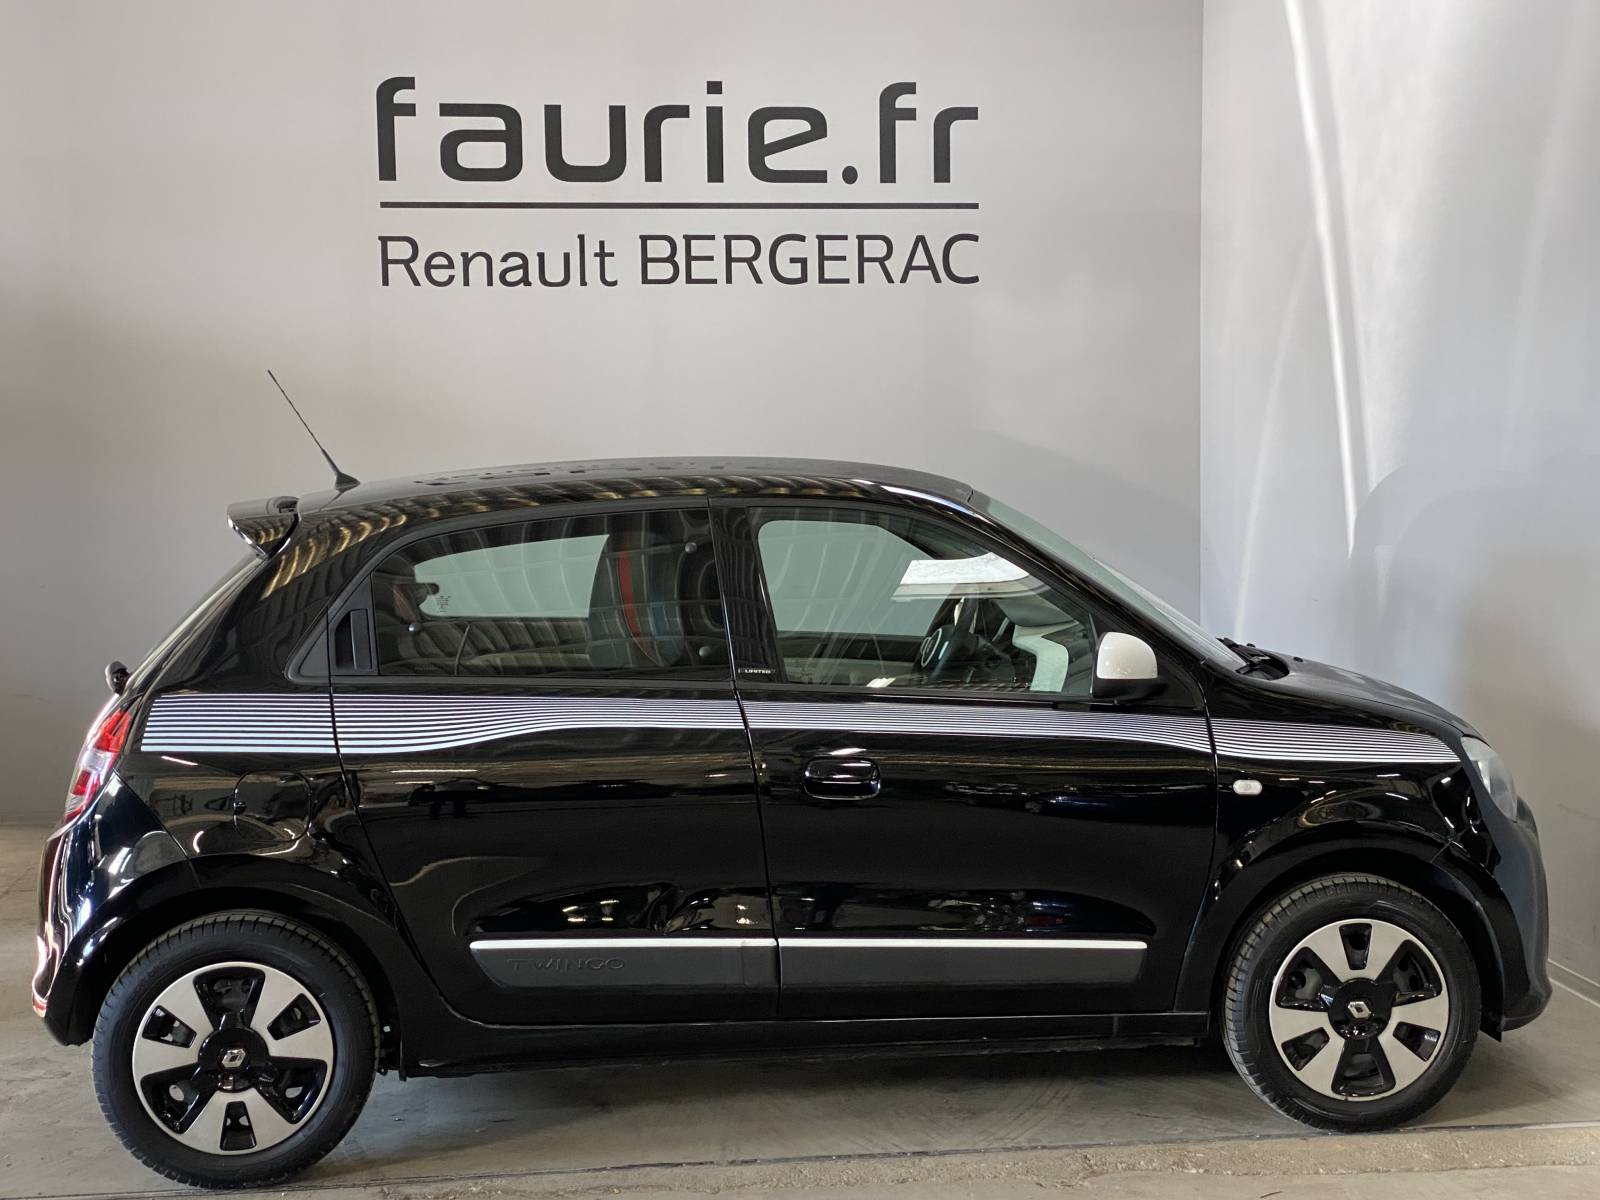 RENAULT Twingo III 0.9 TCe 90 Energy - véhicule d'occasion - Site Internet Faurie - Renault - Faurie Auto Bergerac - 24100 - Bergerac - 4